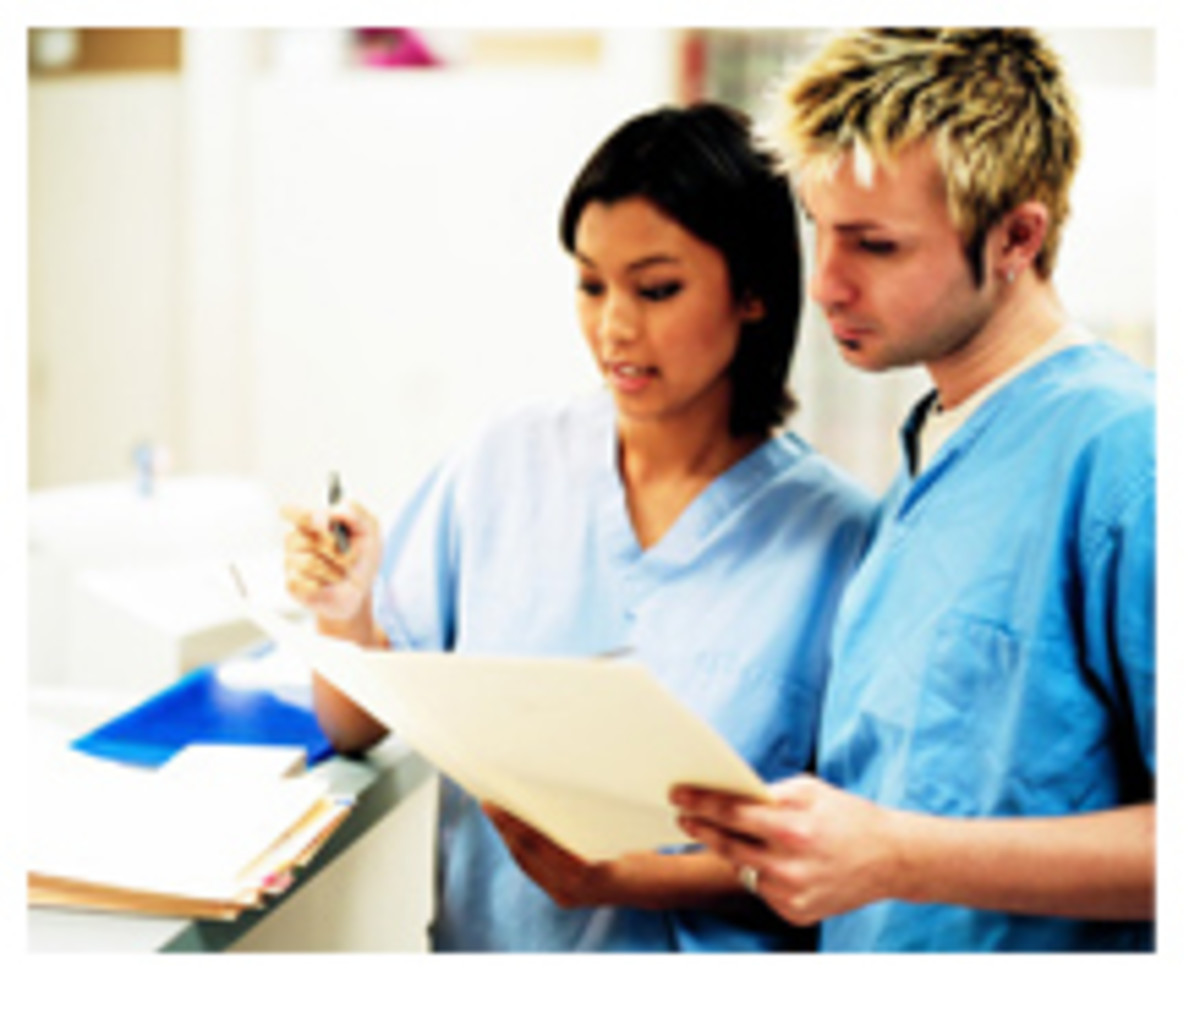 Healthcare workers are specially trained about HIPAA and keeping your personal information confidential.